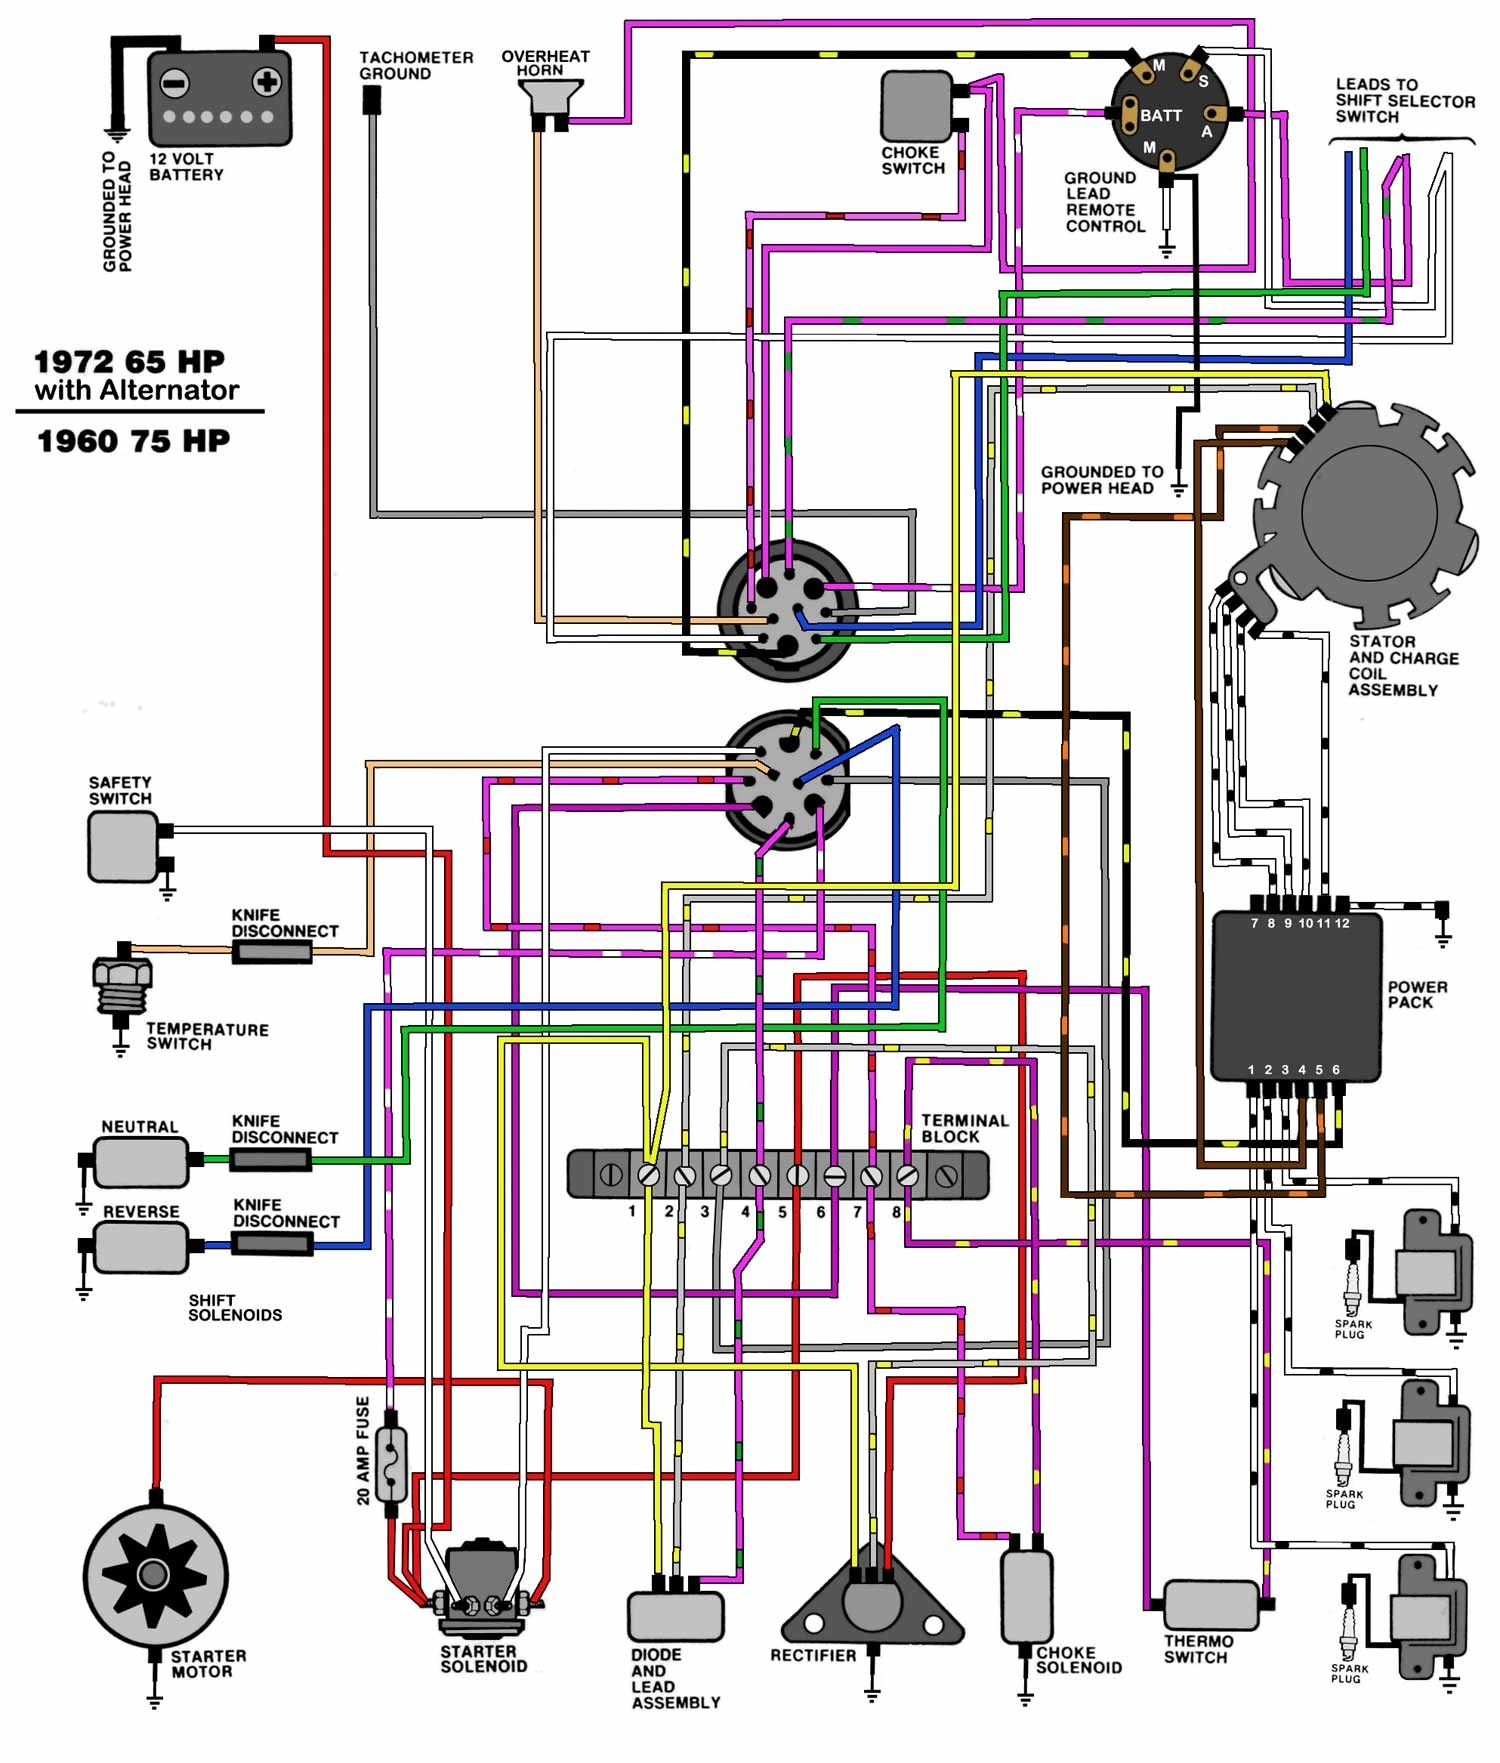 mastertech marine evinrude johnson outboard wiring diagrams for 70 hp evinrude wiring diagram?resize\=665%2C782\&ssl\=1 yamaha outboard wiring diagram wiring diagram byblank yamaha outboard ignition switch wiring diagram at n-0.co